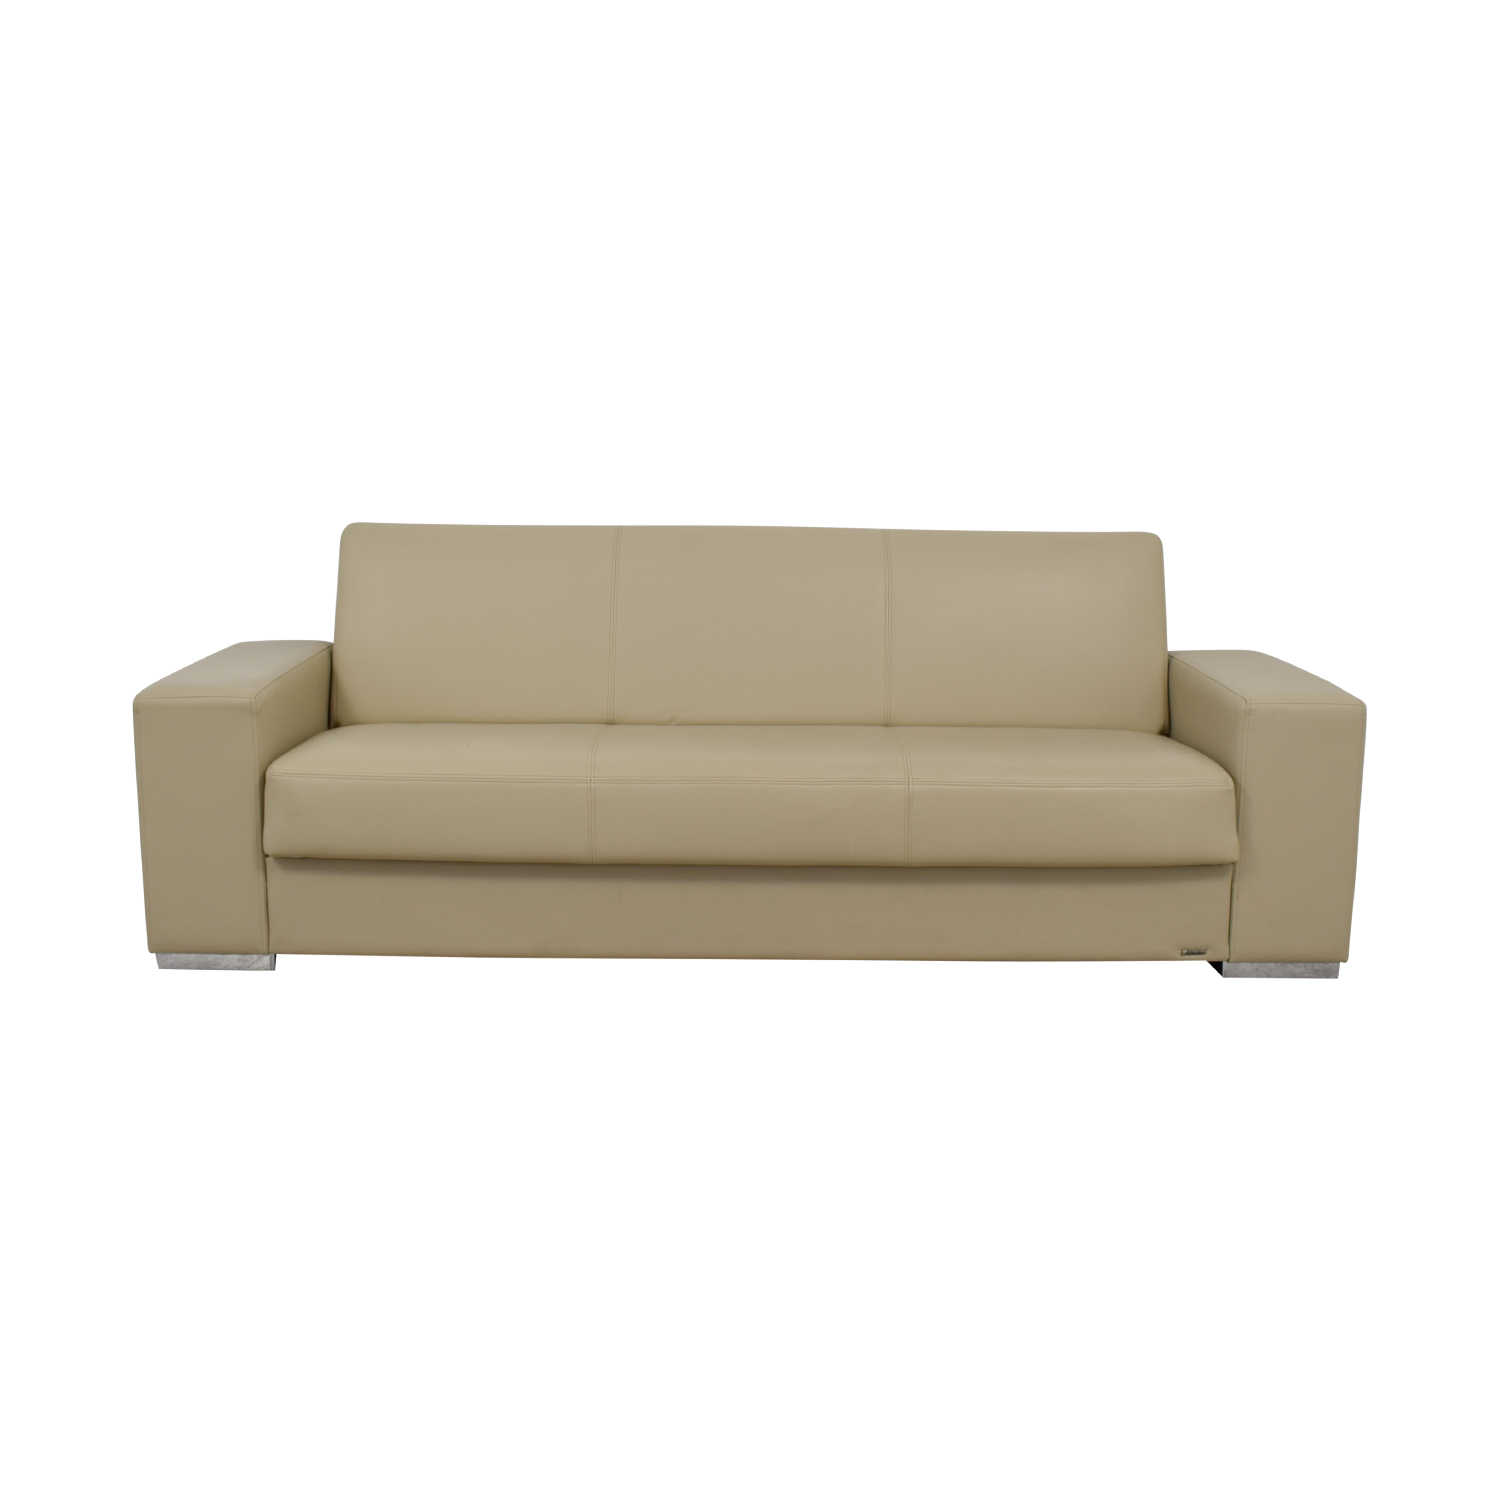 shop Istikbal Istikbal Cream Convertible Sofa online